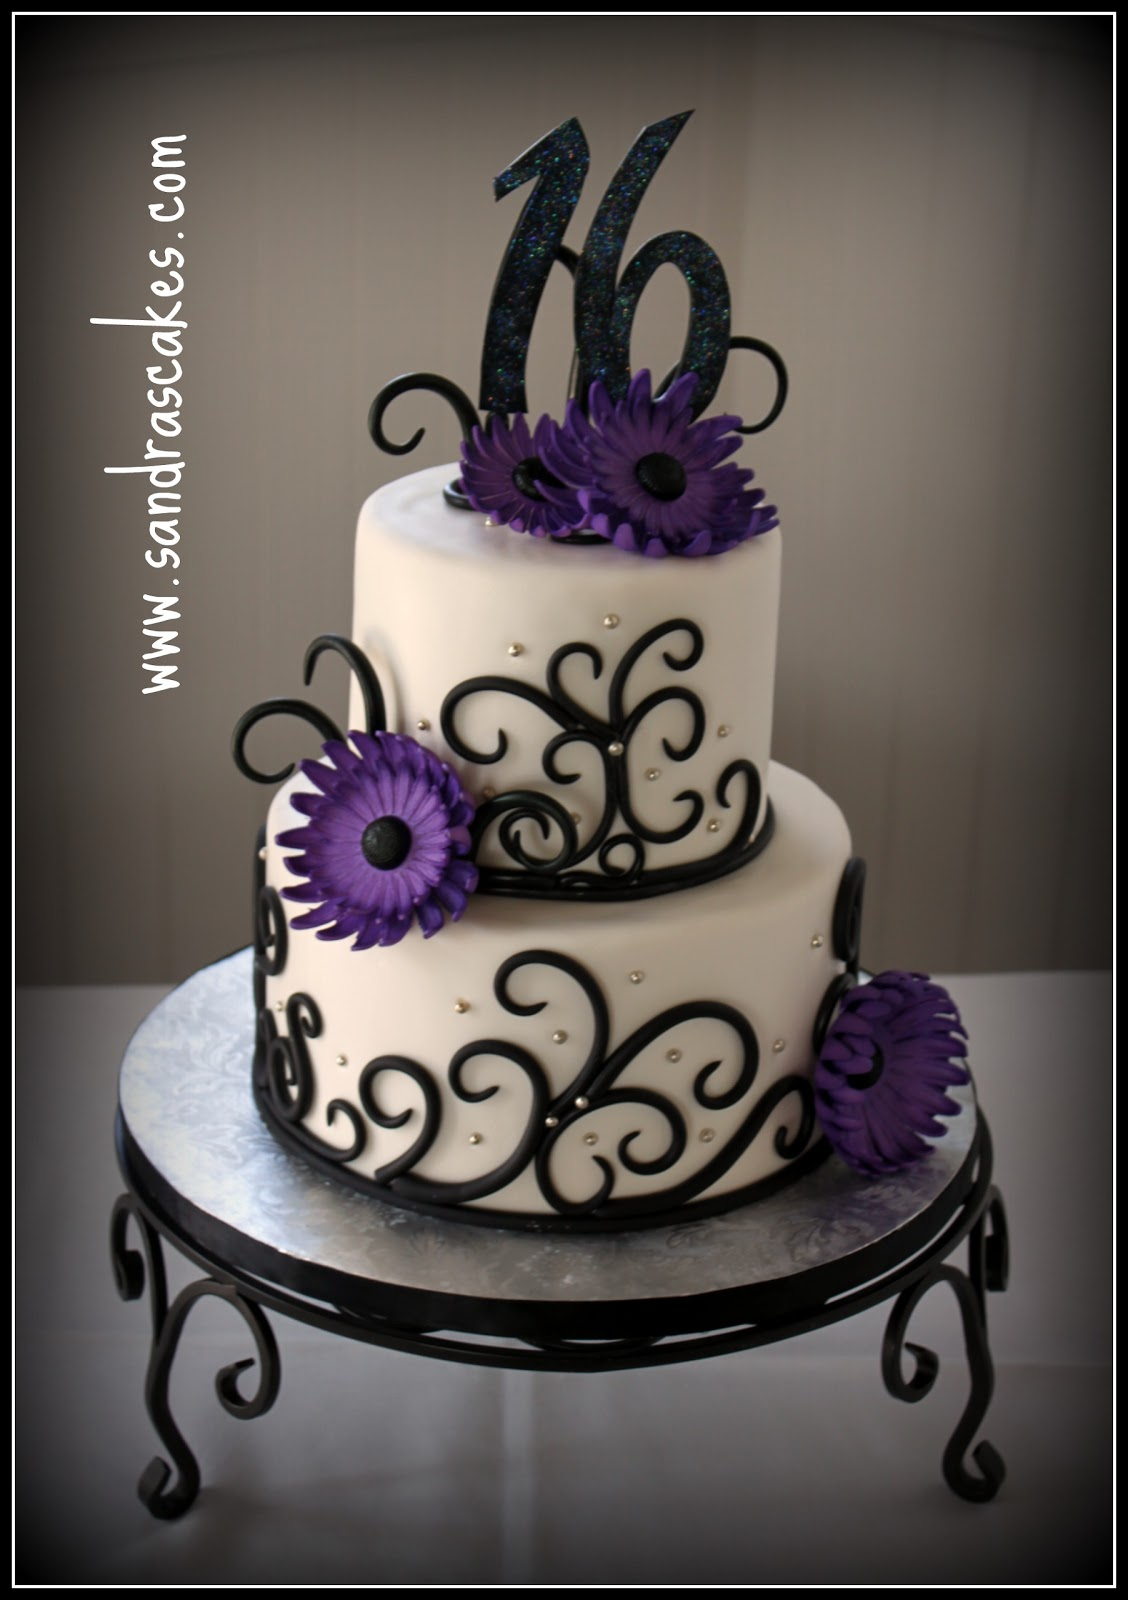 Cake Designs For Sweet Sixteen : Creative Sweet 16 Birthday Cakes Foto Artis - Candydoll